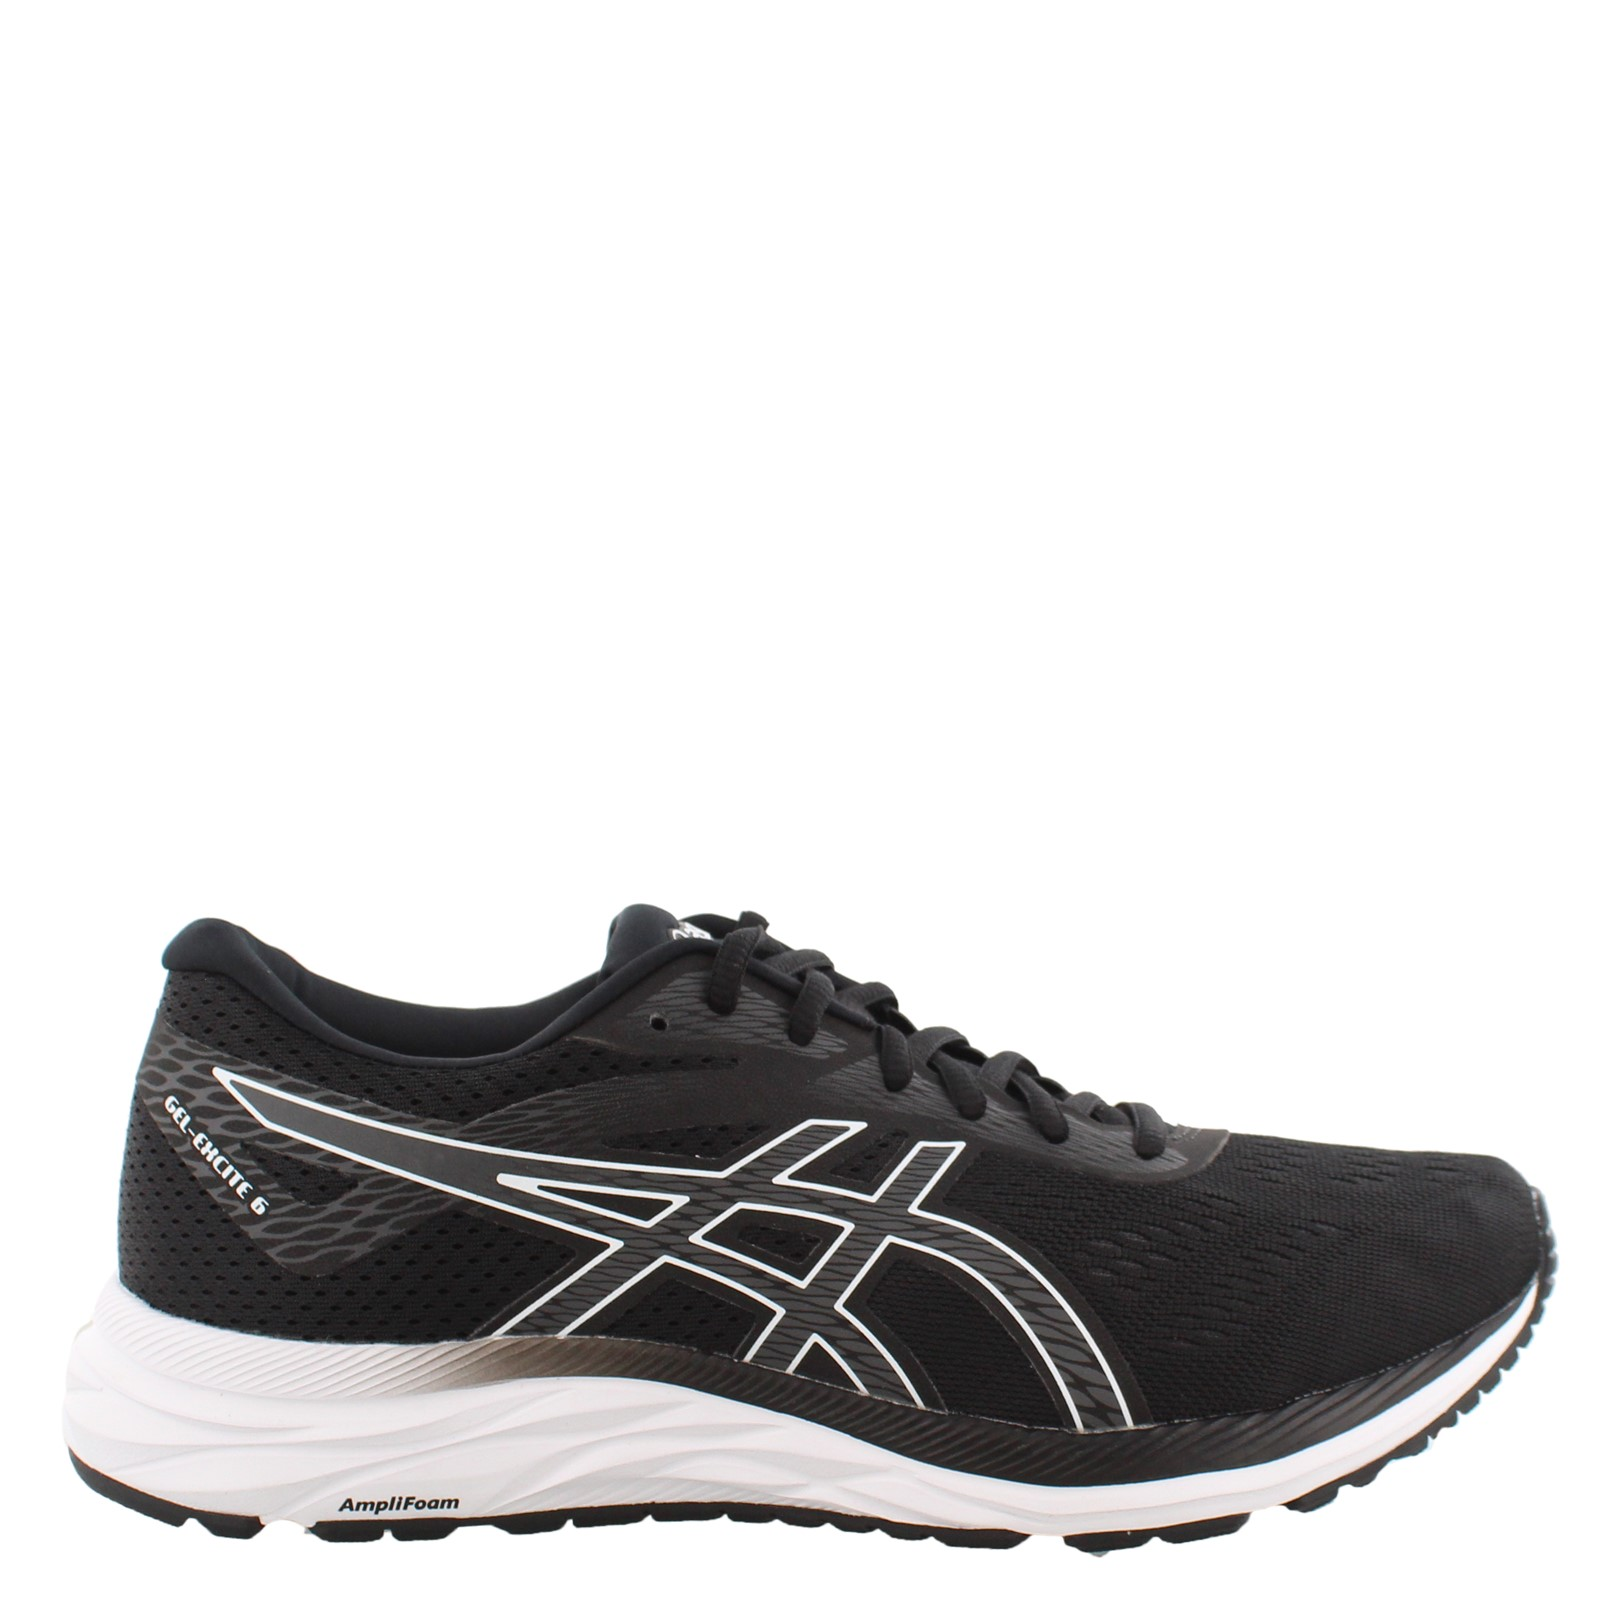 Men's Asics, Gel Excite 6 Running Sneaker